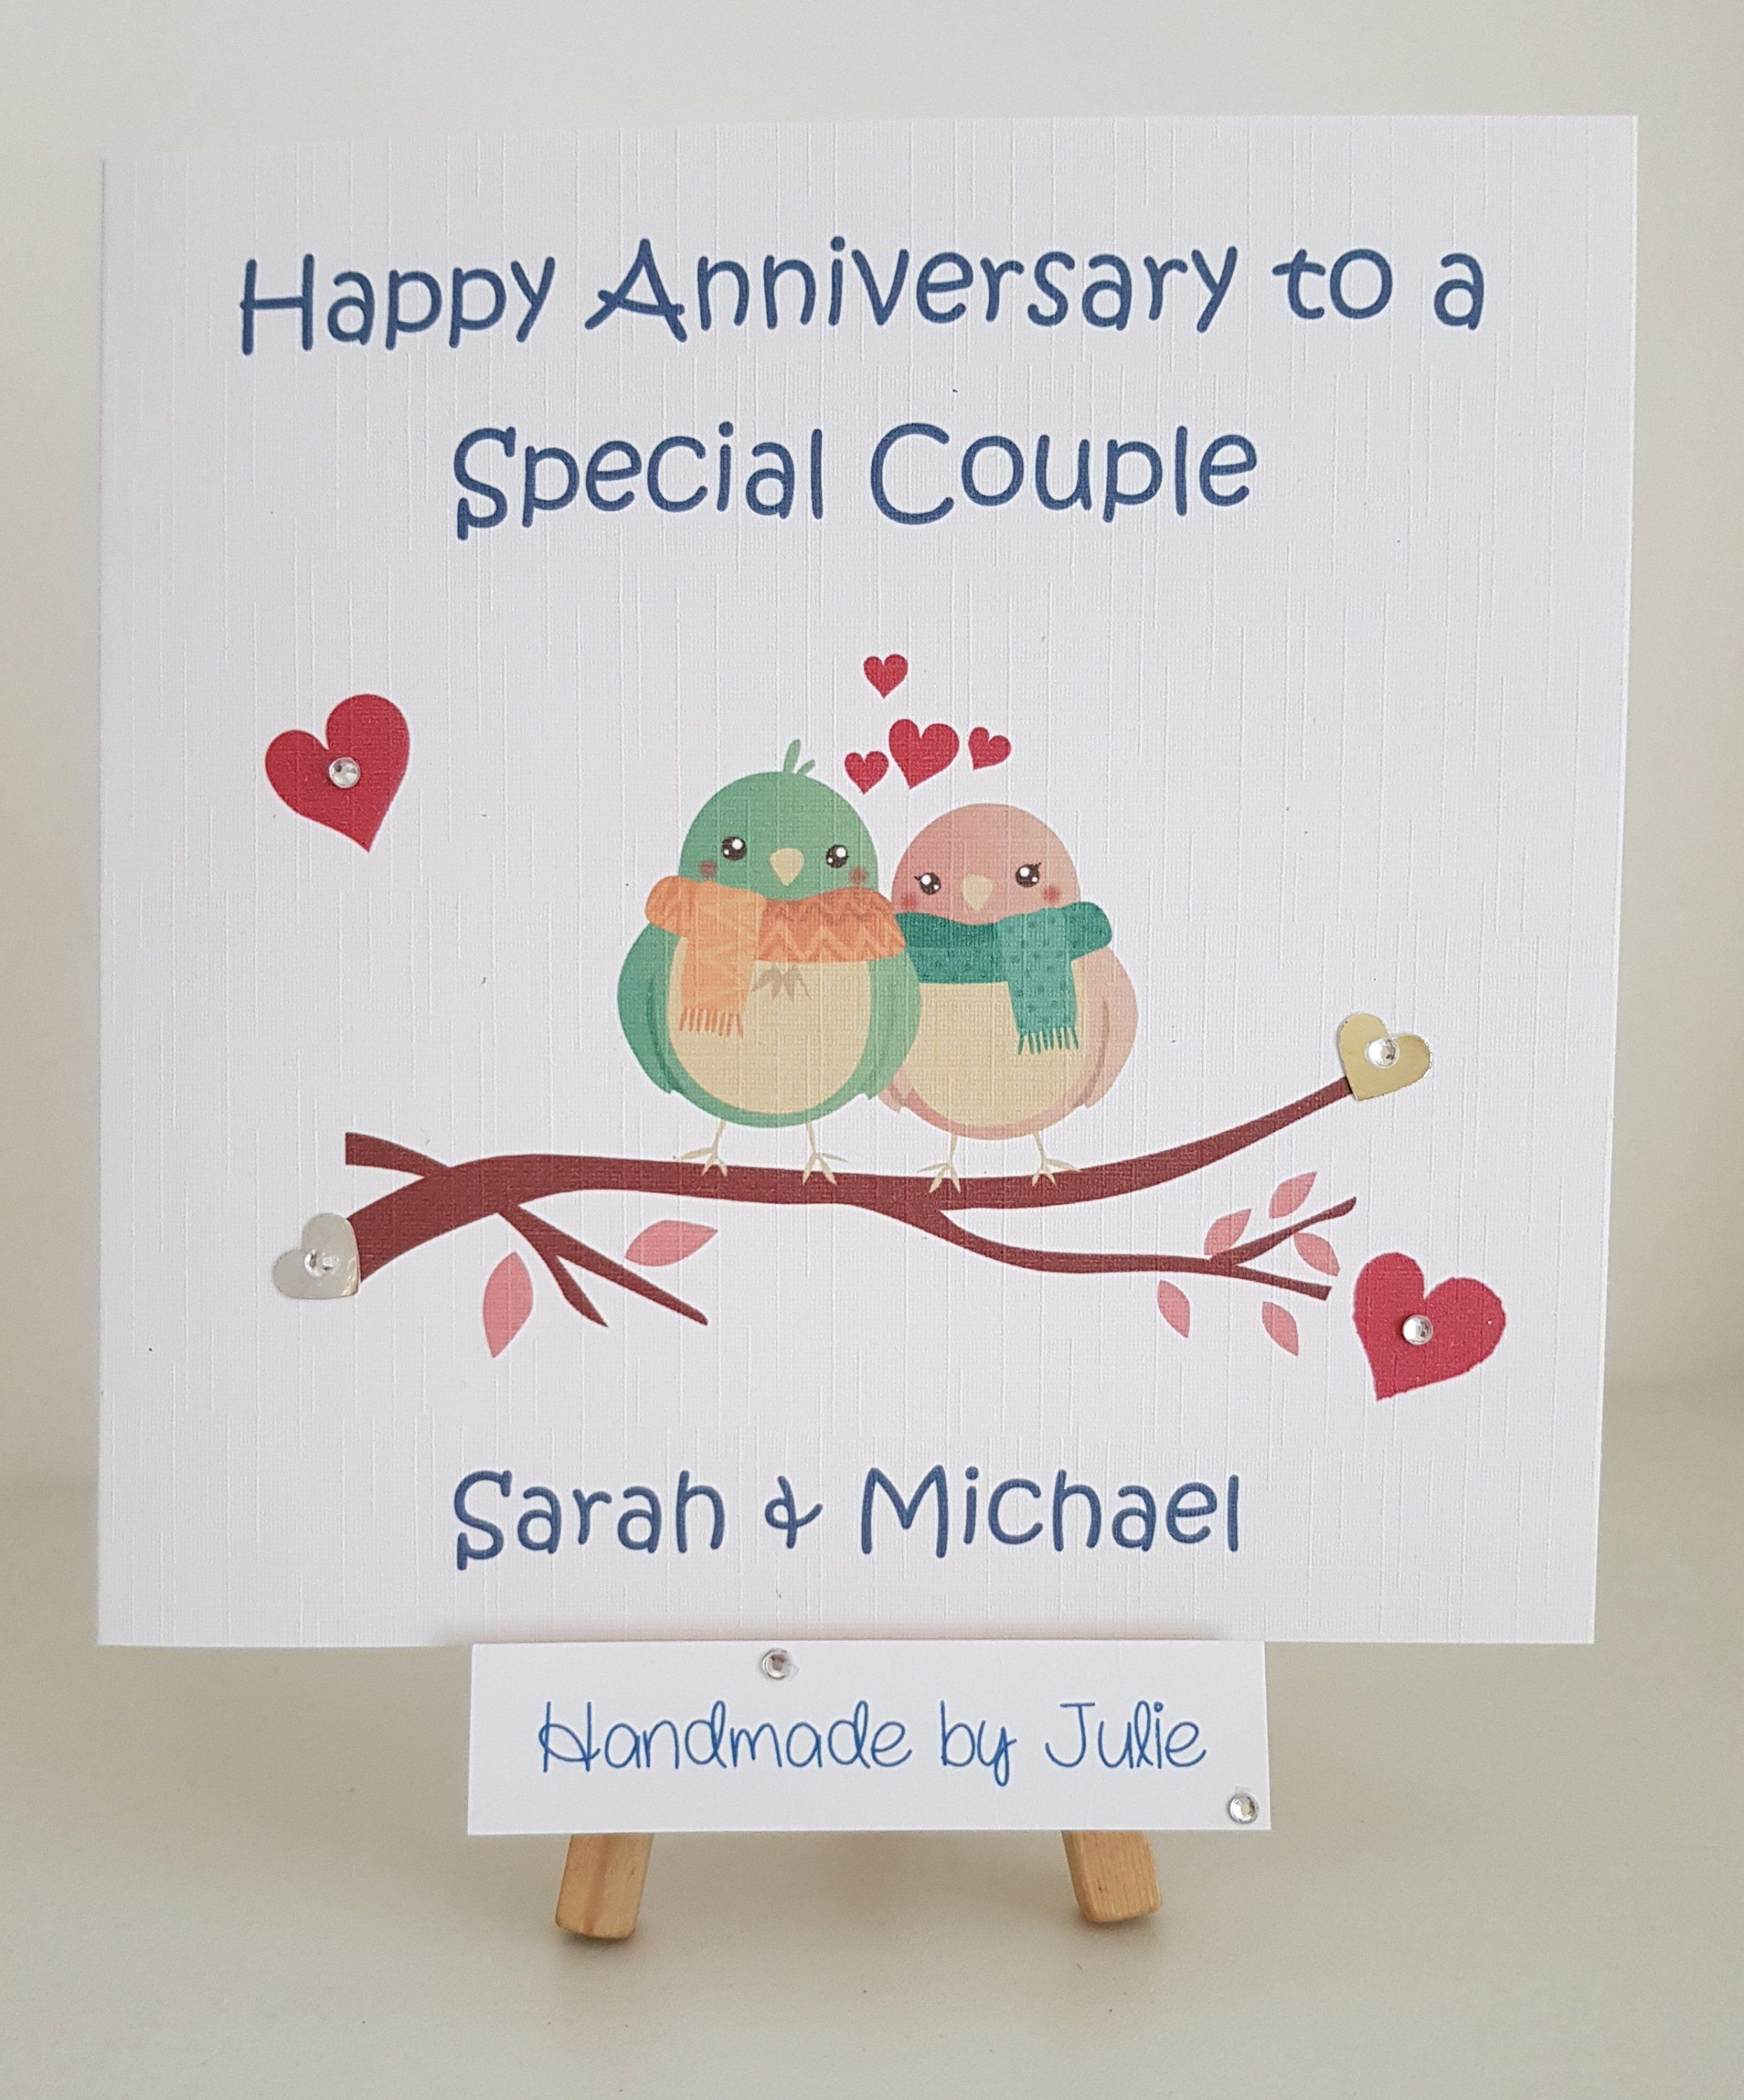 Gorgeous Wedding Anniversary Card For Couple Mum Dad Friends Nan Grandad Cute Love Birds Personalised With Names Any Anniversary Year Anniversary Cards For Couple Anniversary Cards Wedding Anniversary Cards